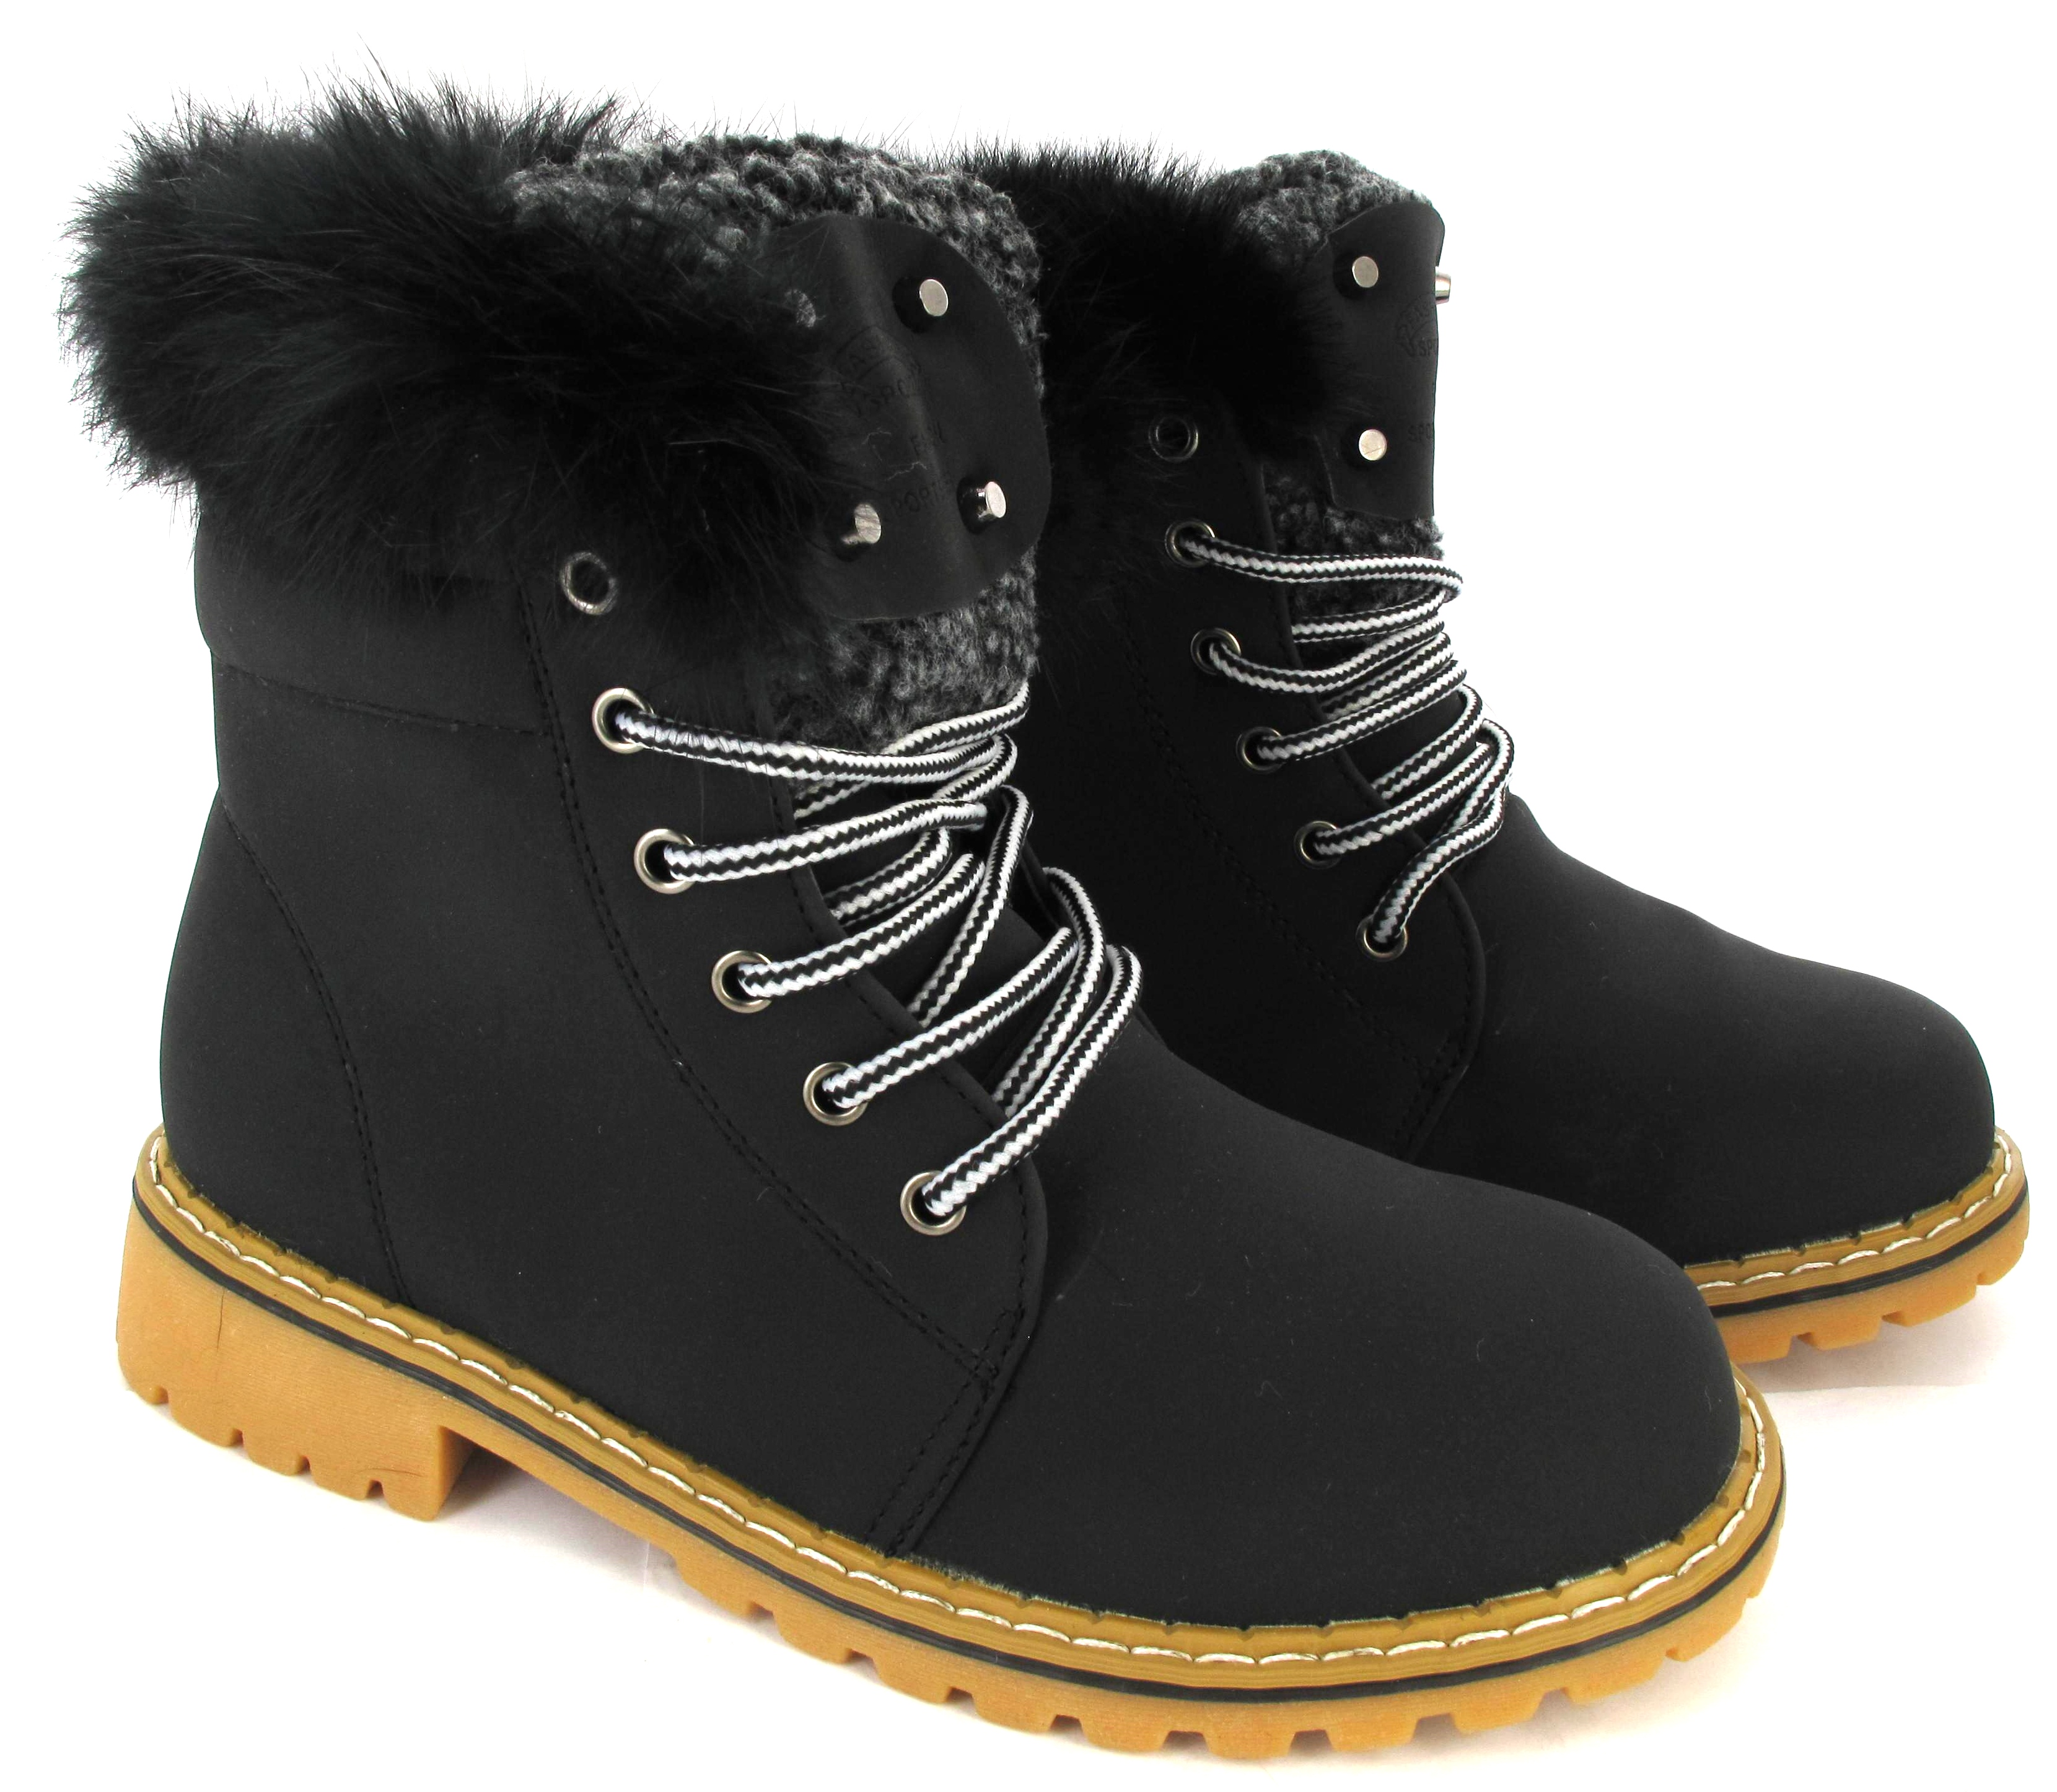 LADIES FAUX FUR GRIP SOLE WOMENS WINTER WARM ANKLE BOOTS TRAINERS ...